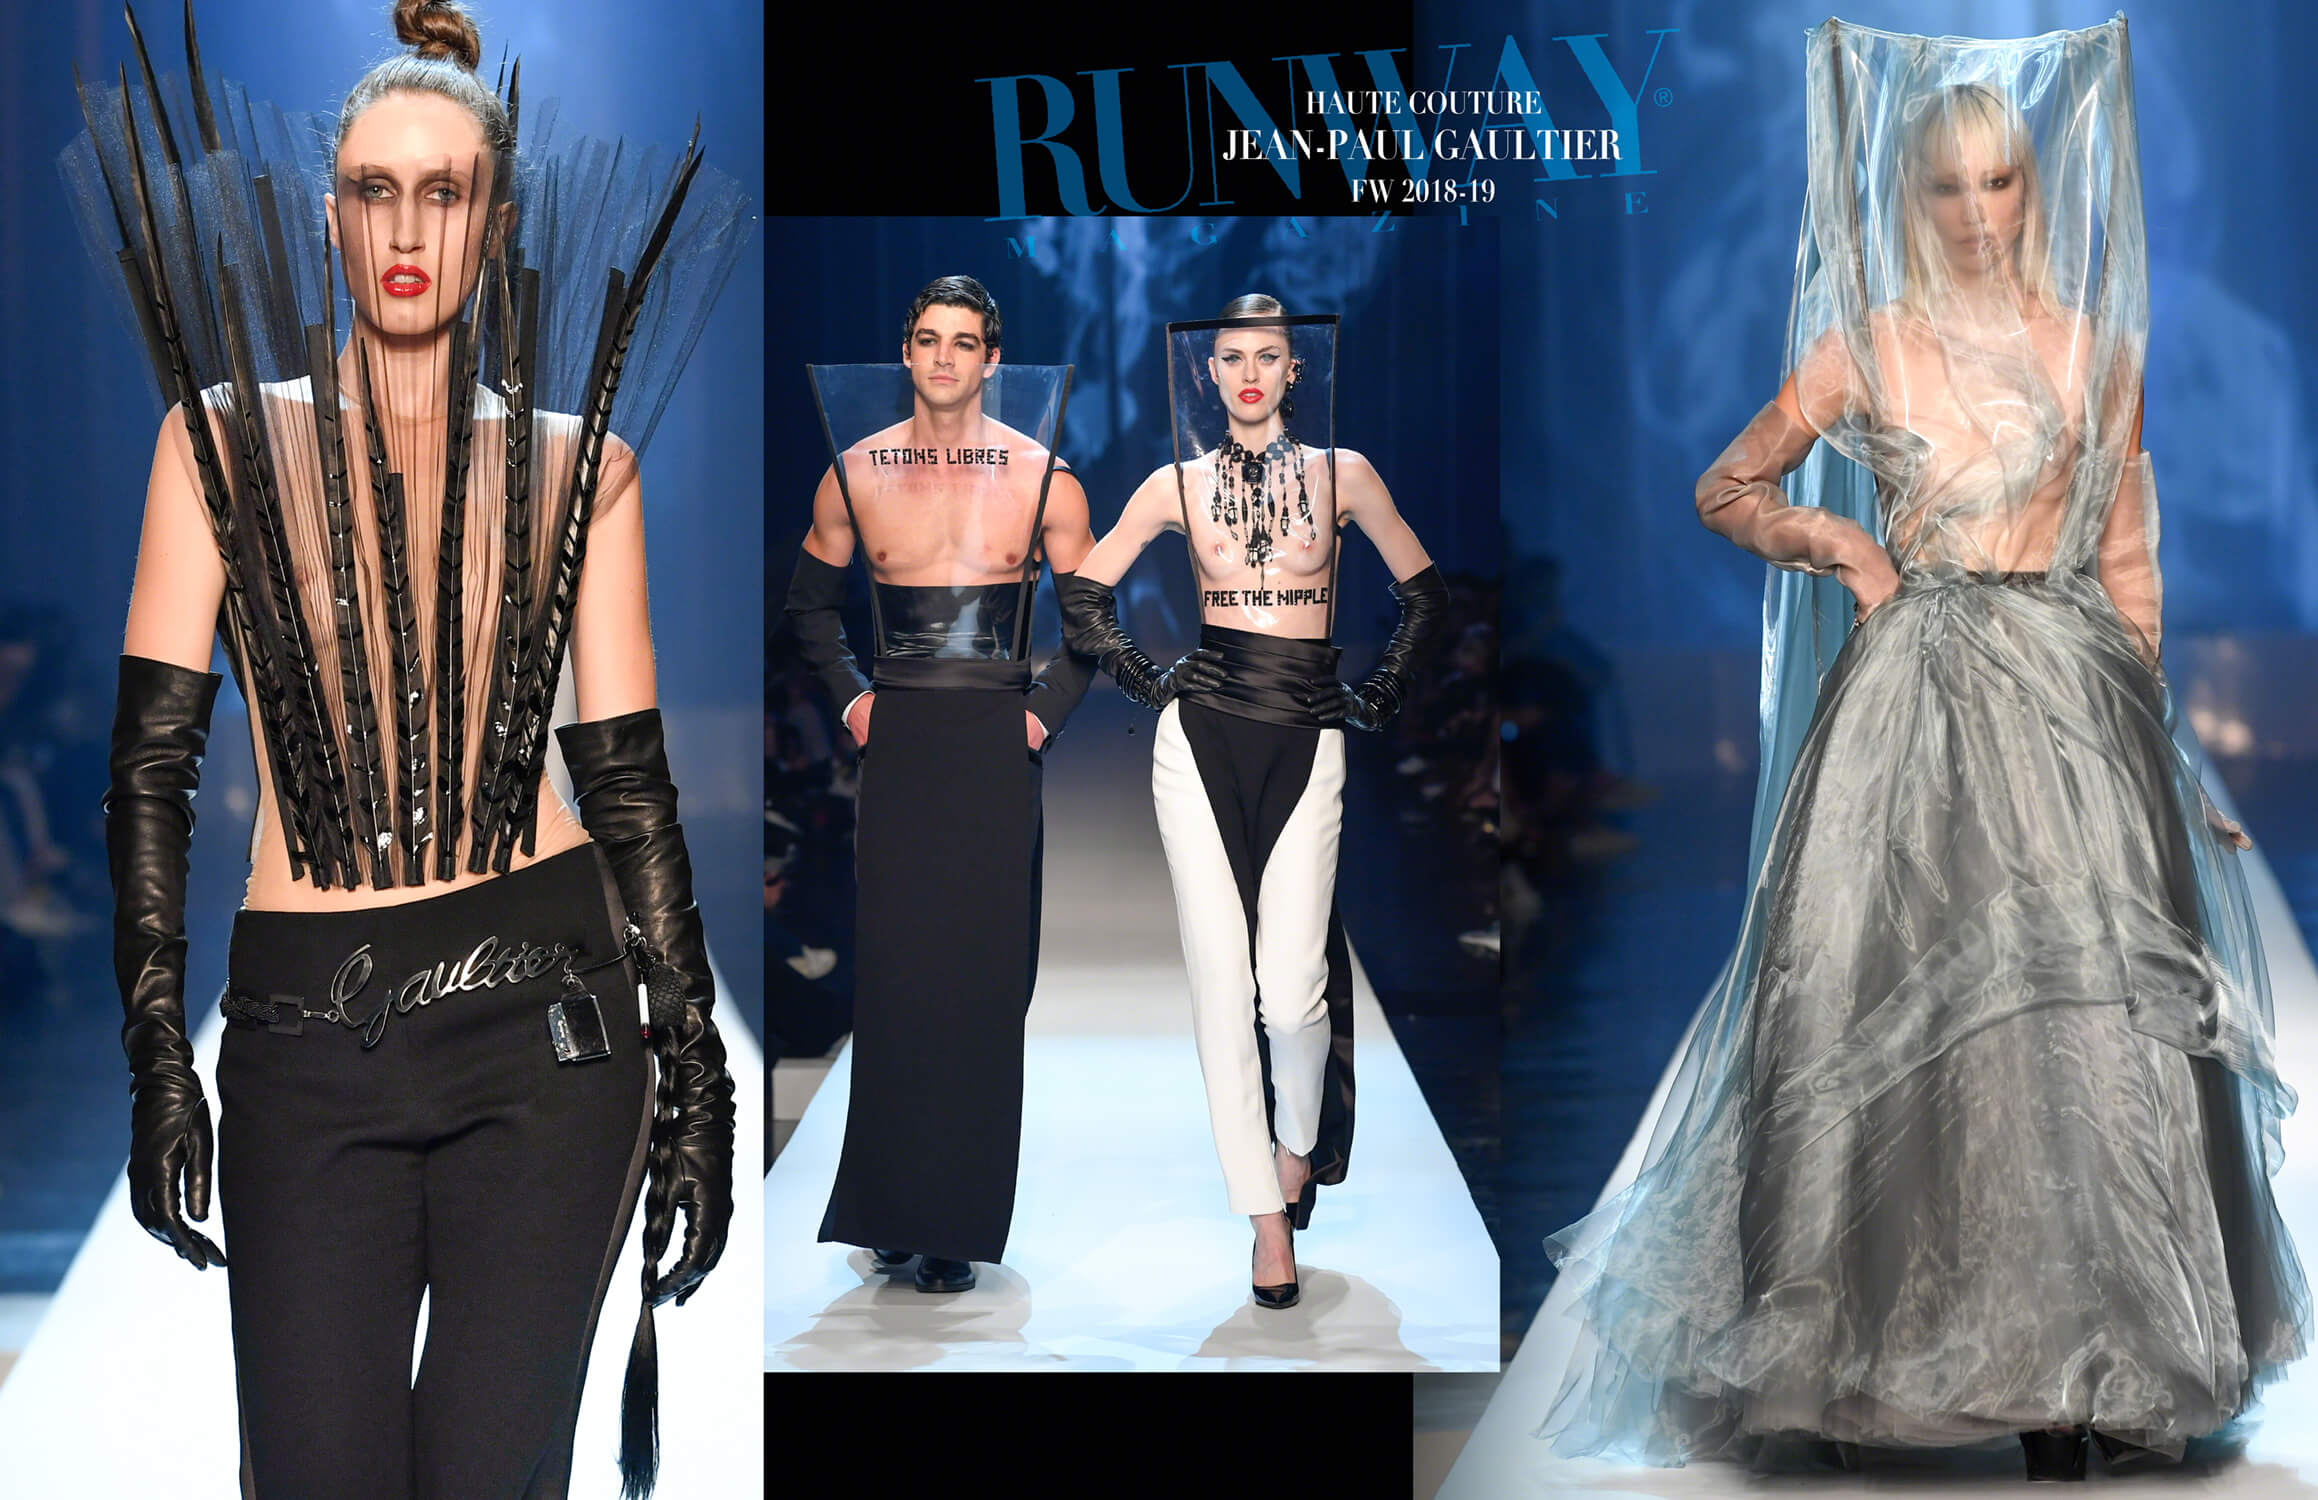 JEAN-PAUL GAULTIER Haute Couture Fall Winter 2018-2019 Runway Magazine